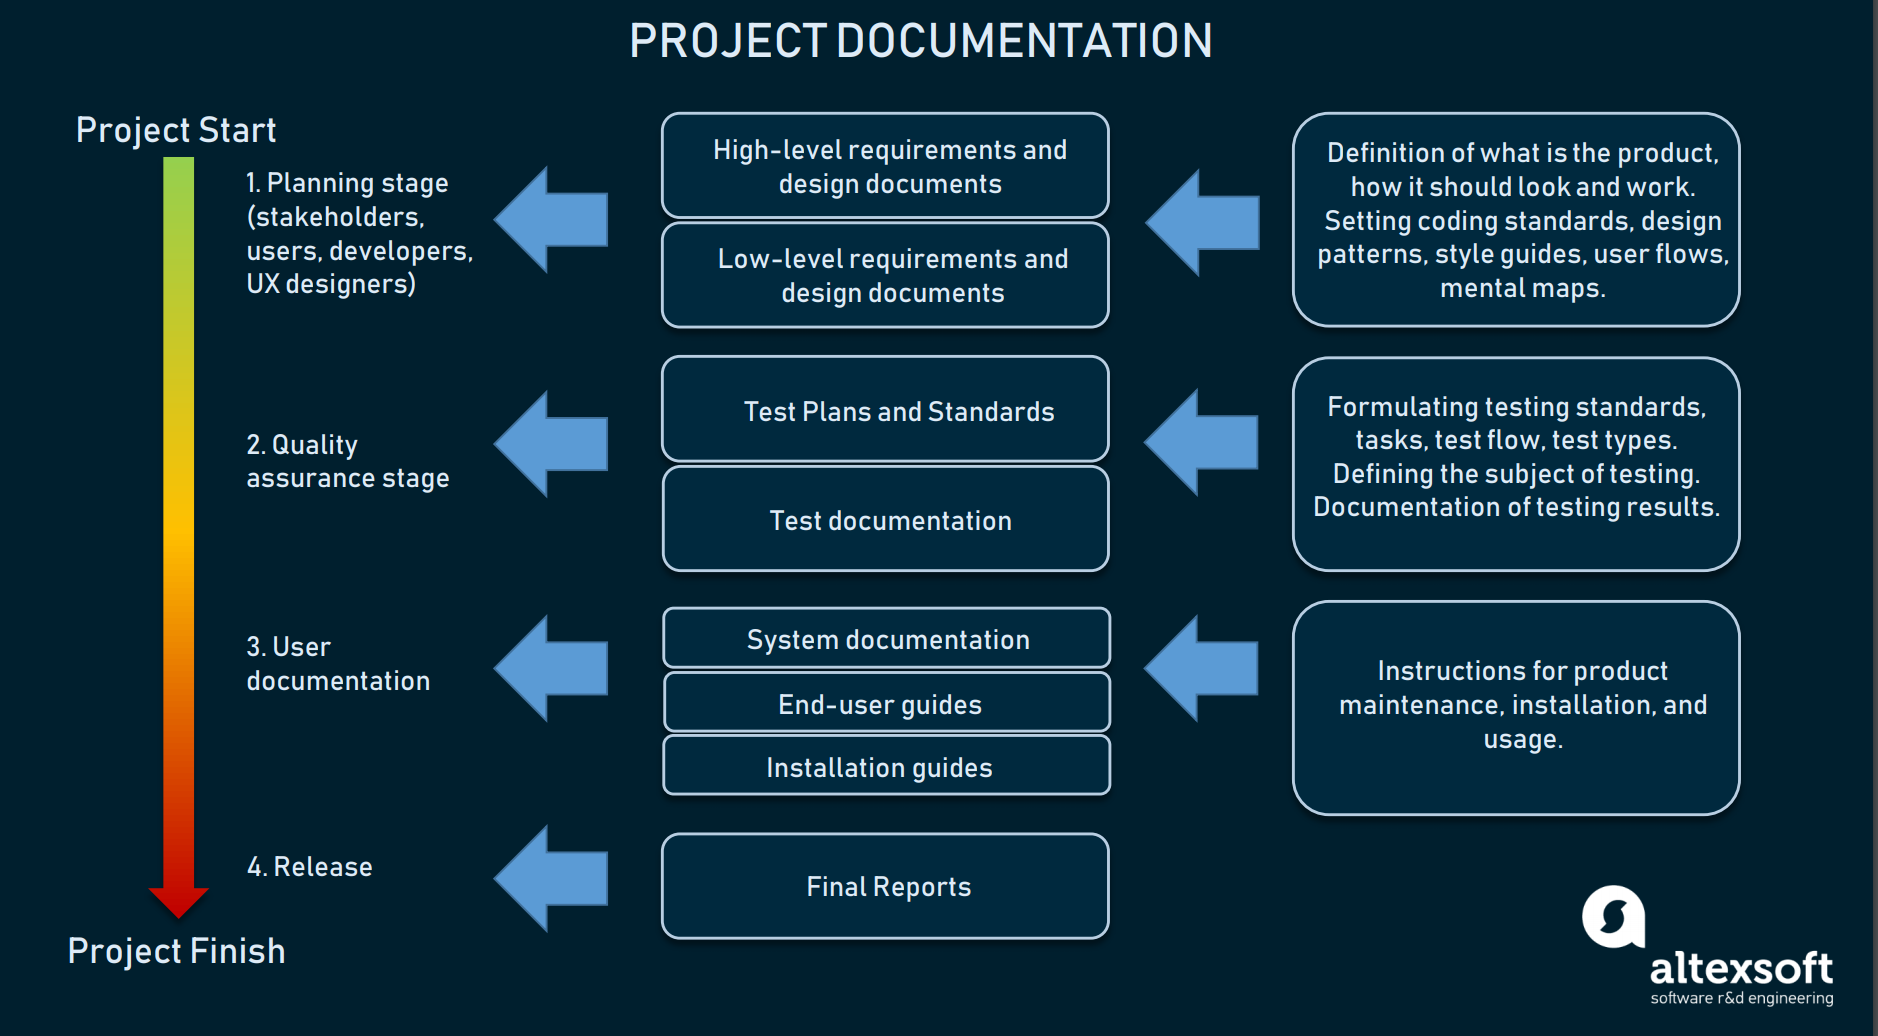 Project documentation by stages and purpose